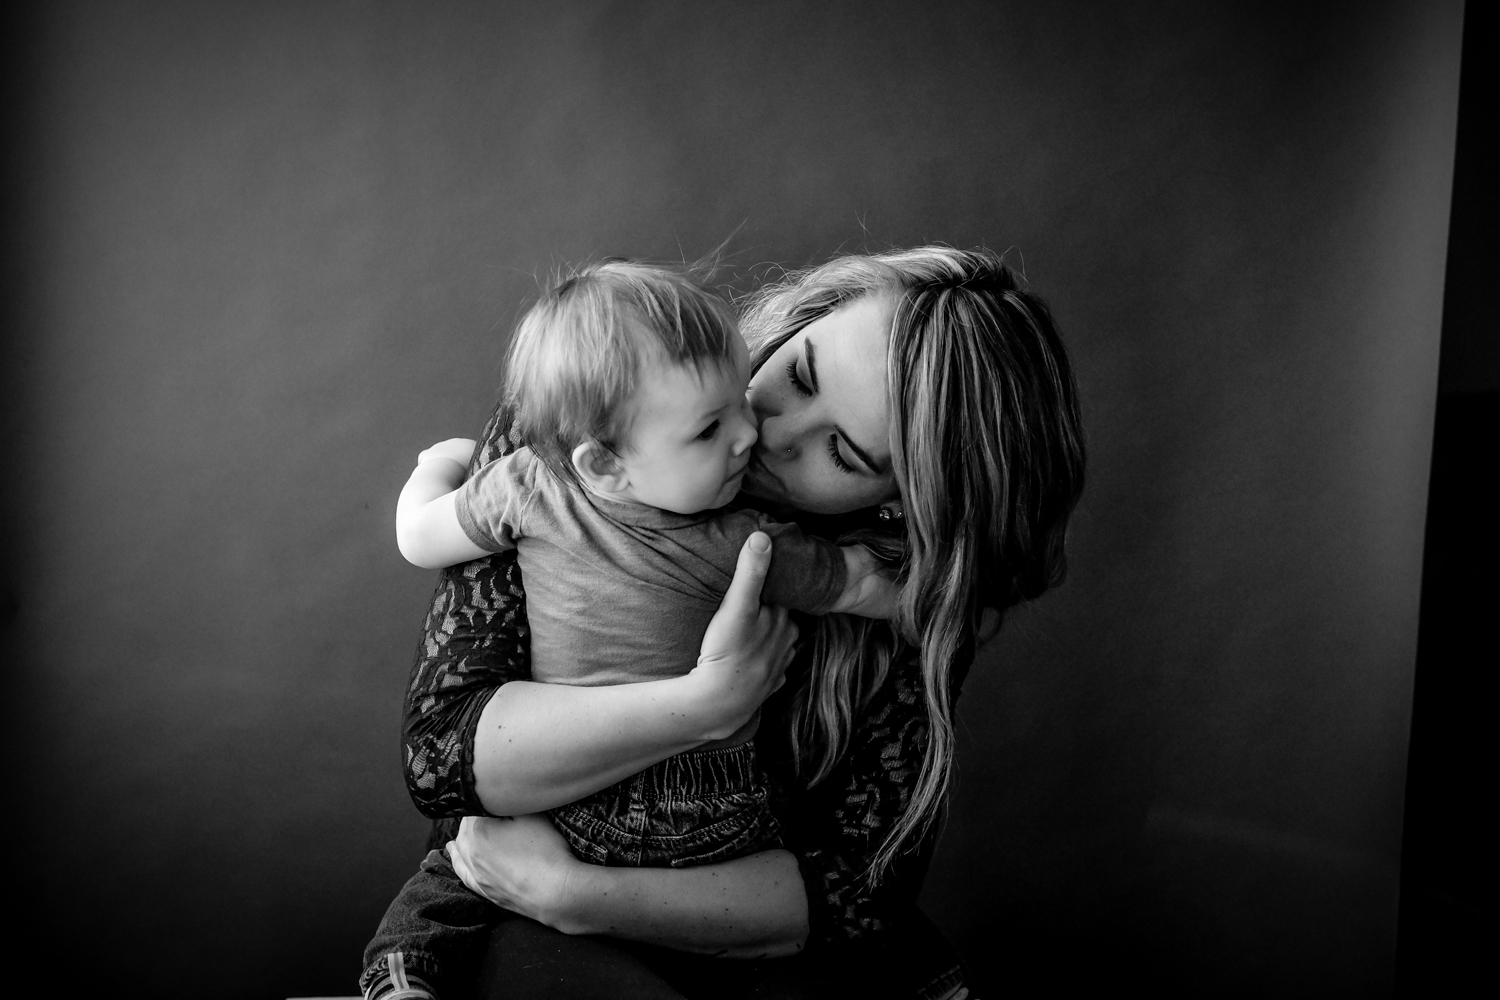 Mother hugging son portrait - 4 Tips for Helping People Feel Comfortable During Their Portrait Session